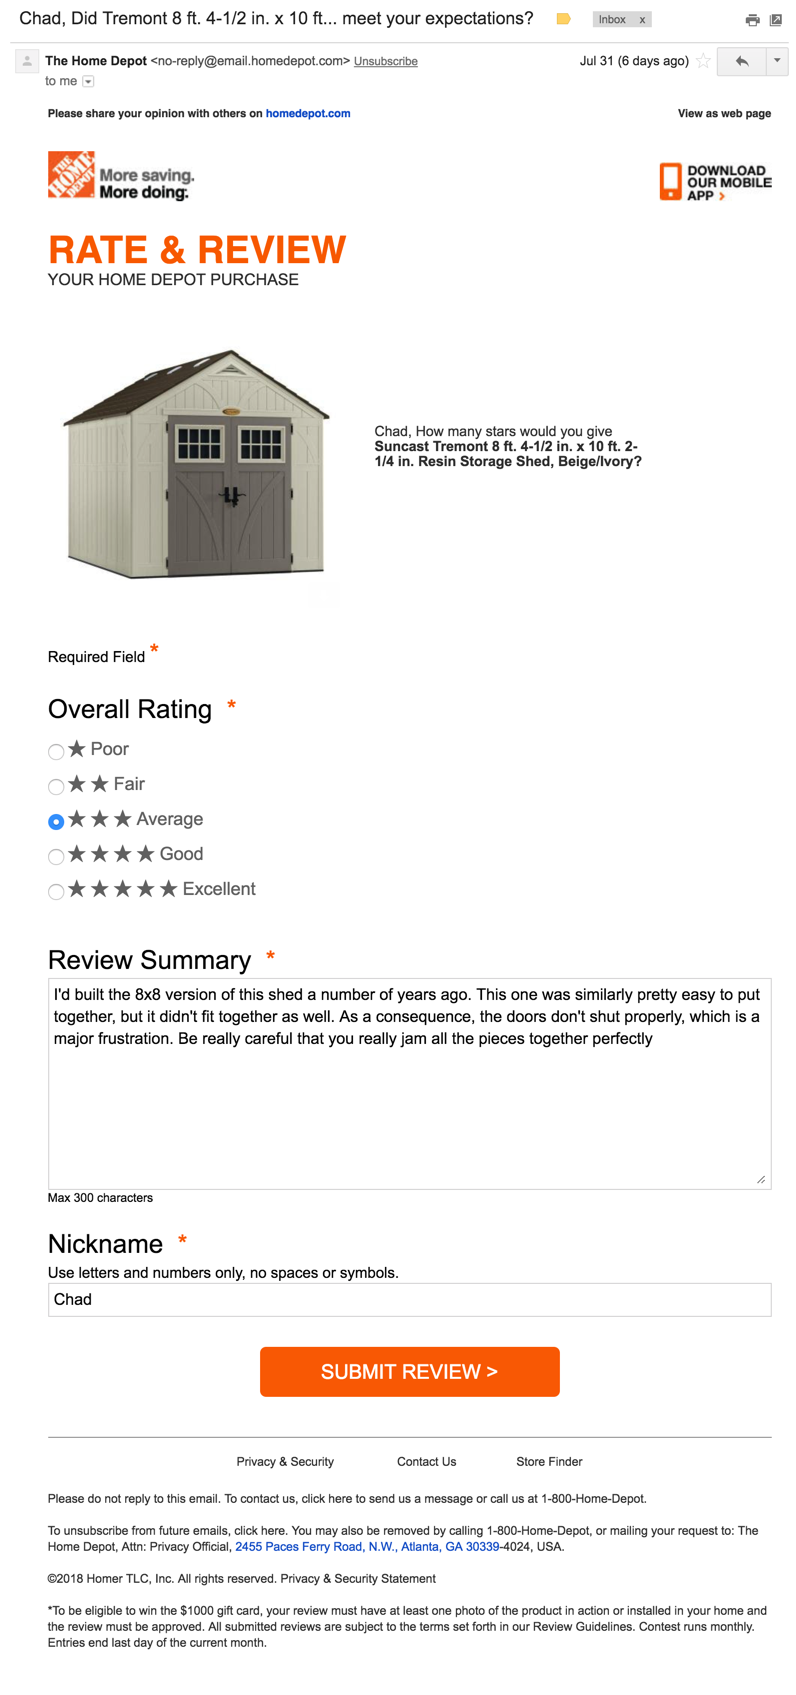 Interactive Home Depot product review request email